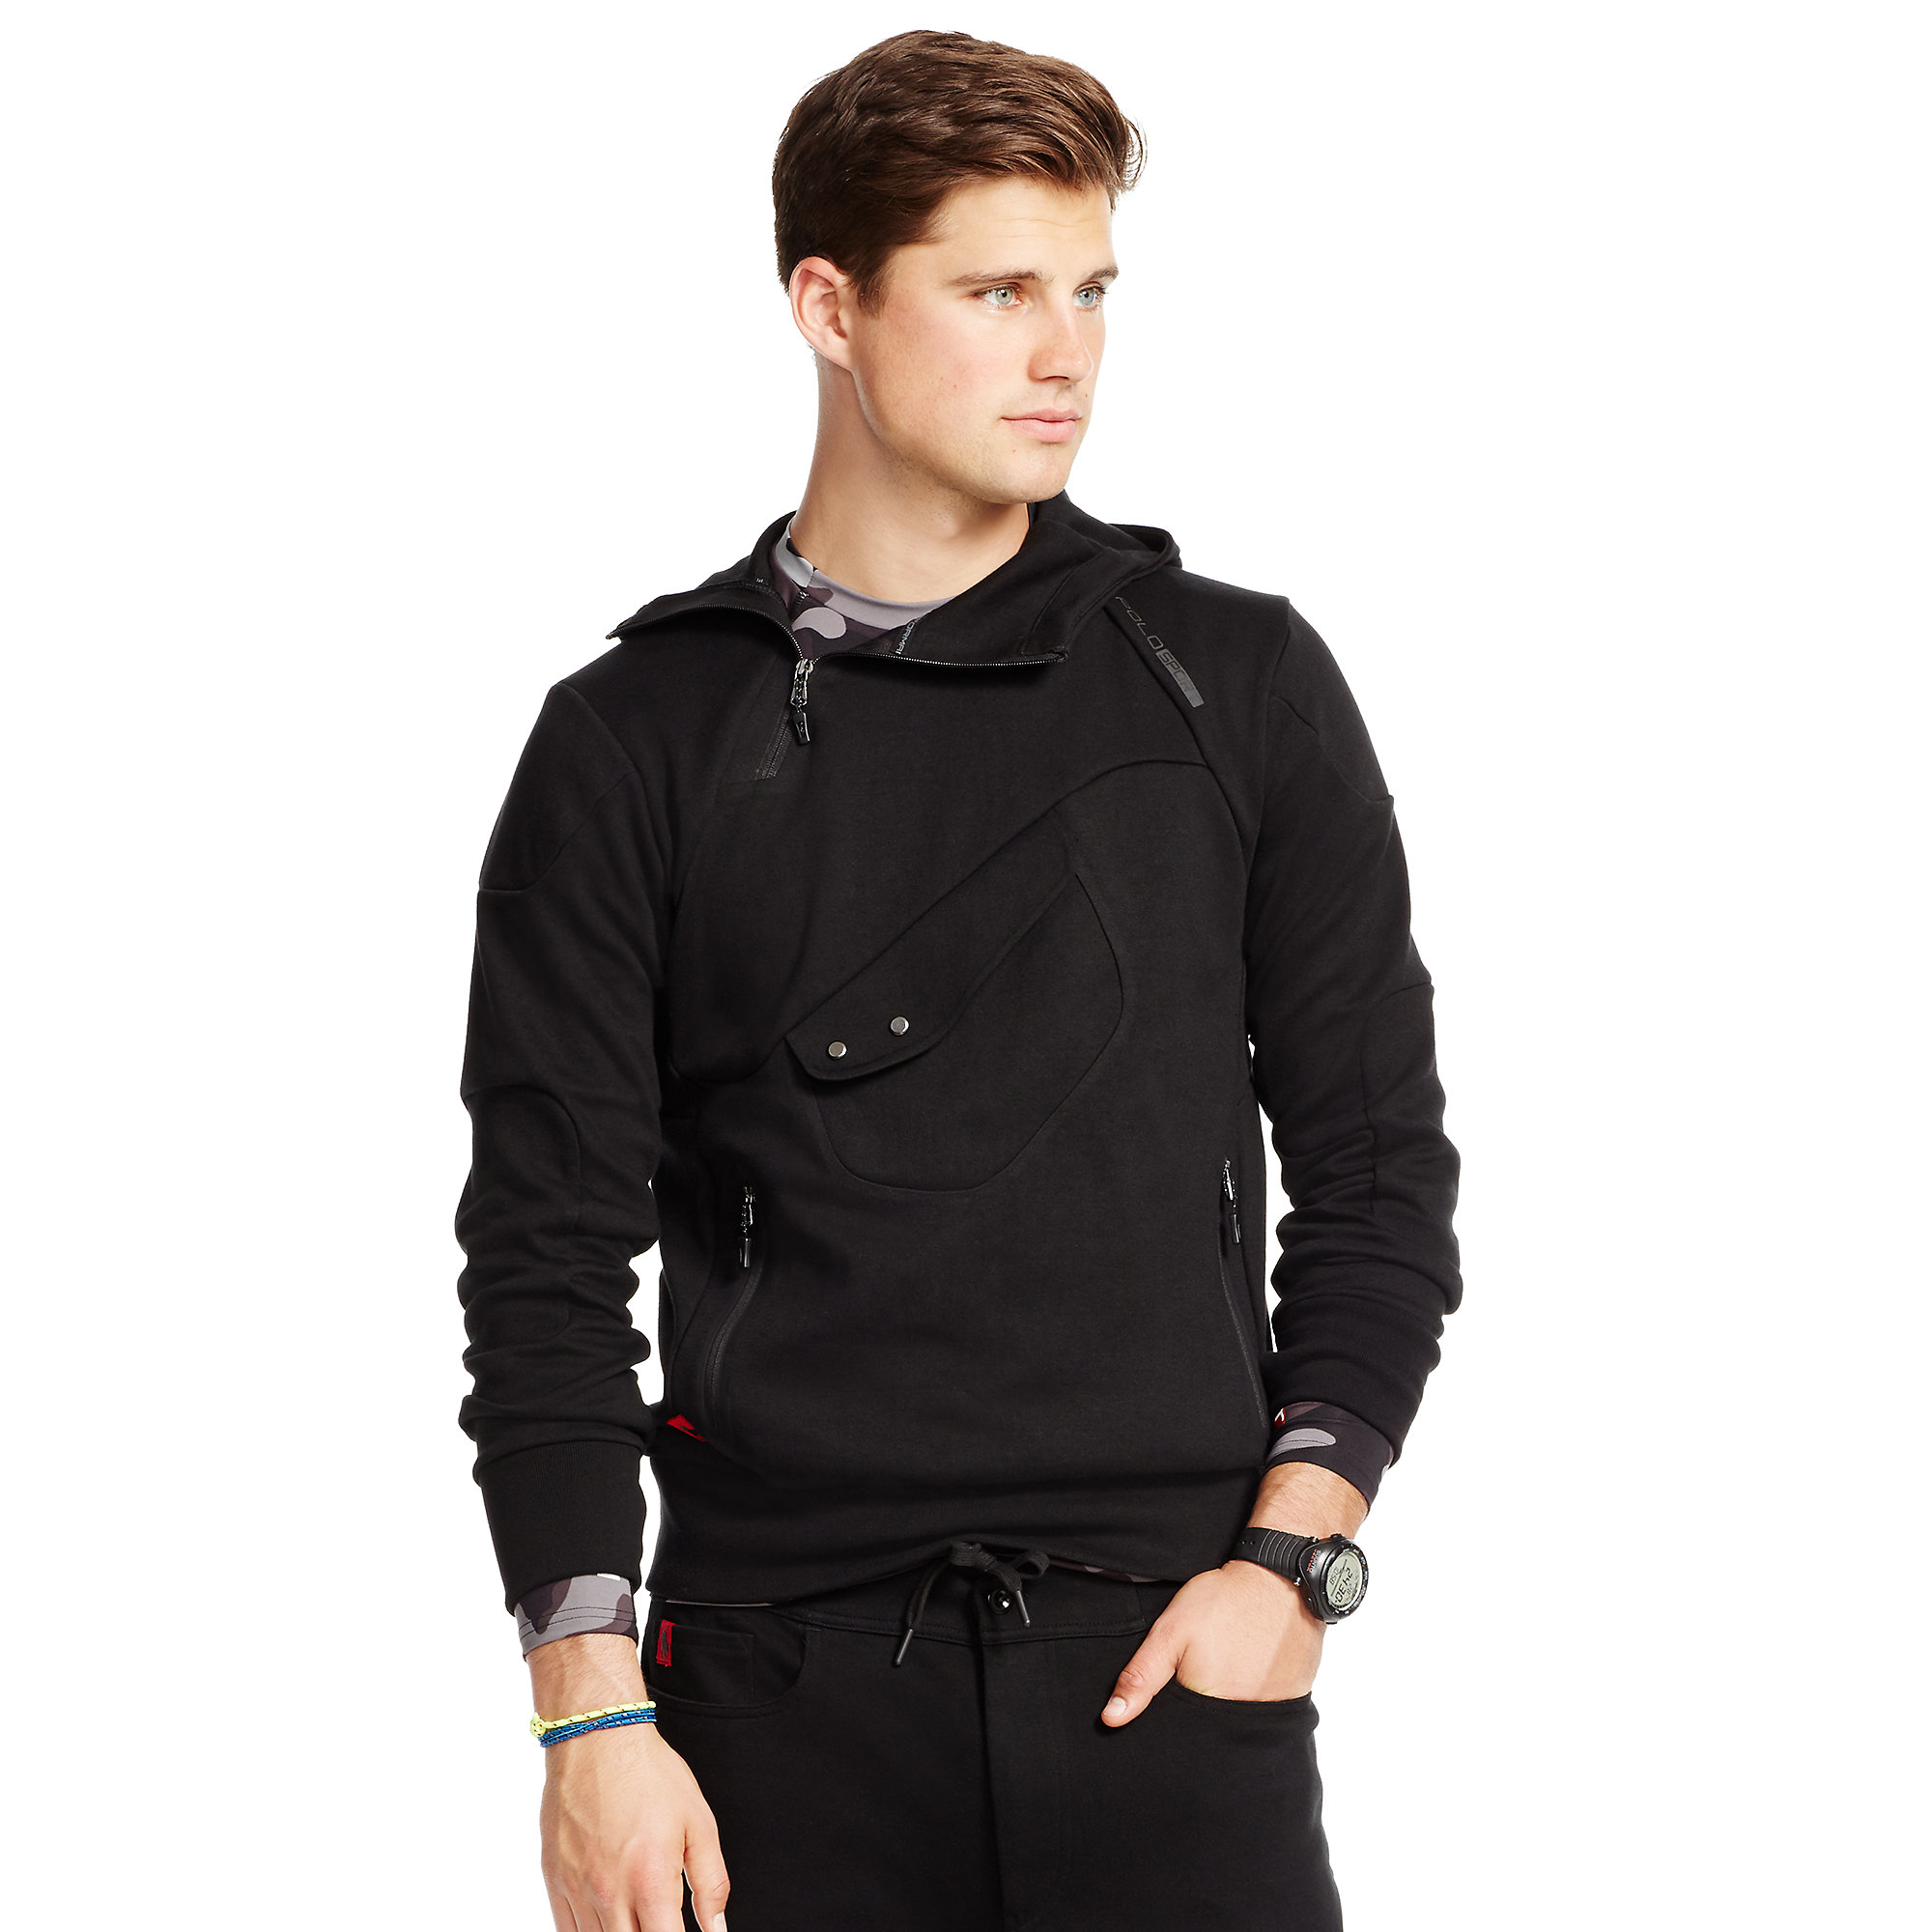 ralph lauren double knit tech hoodie in black for men lyst. Black Bedroom Furniture Sets. Home Design Ideas